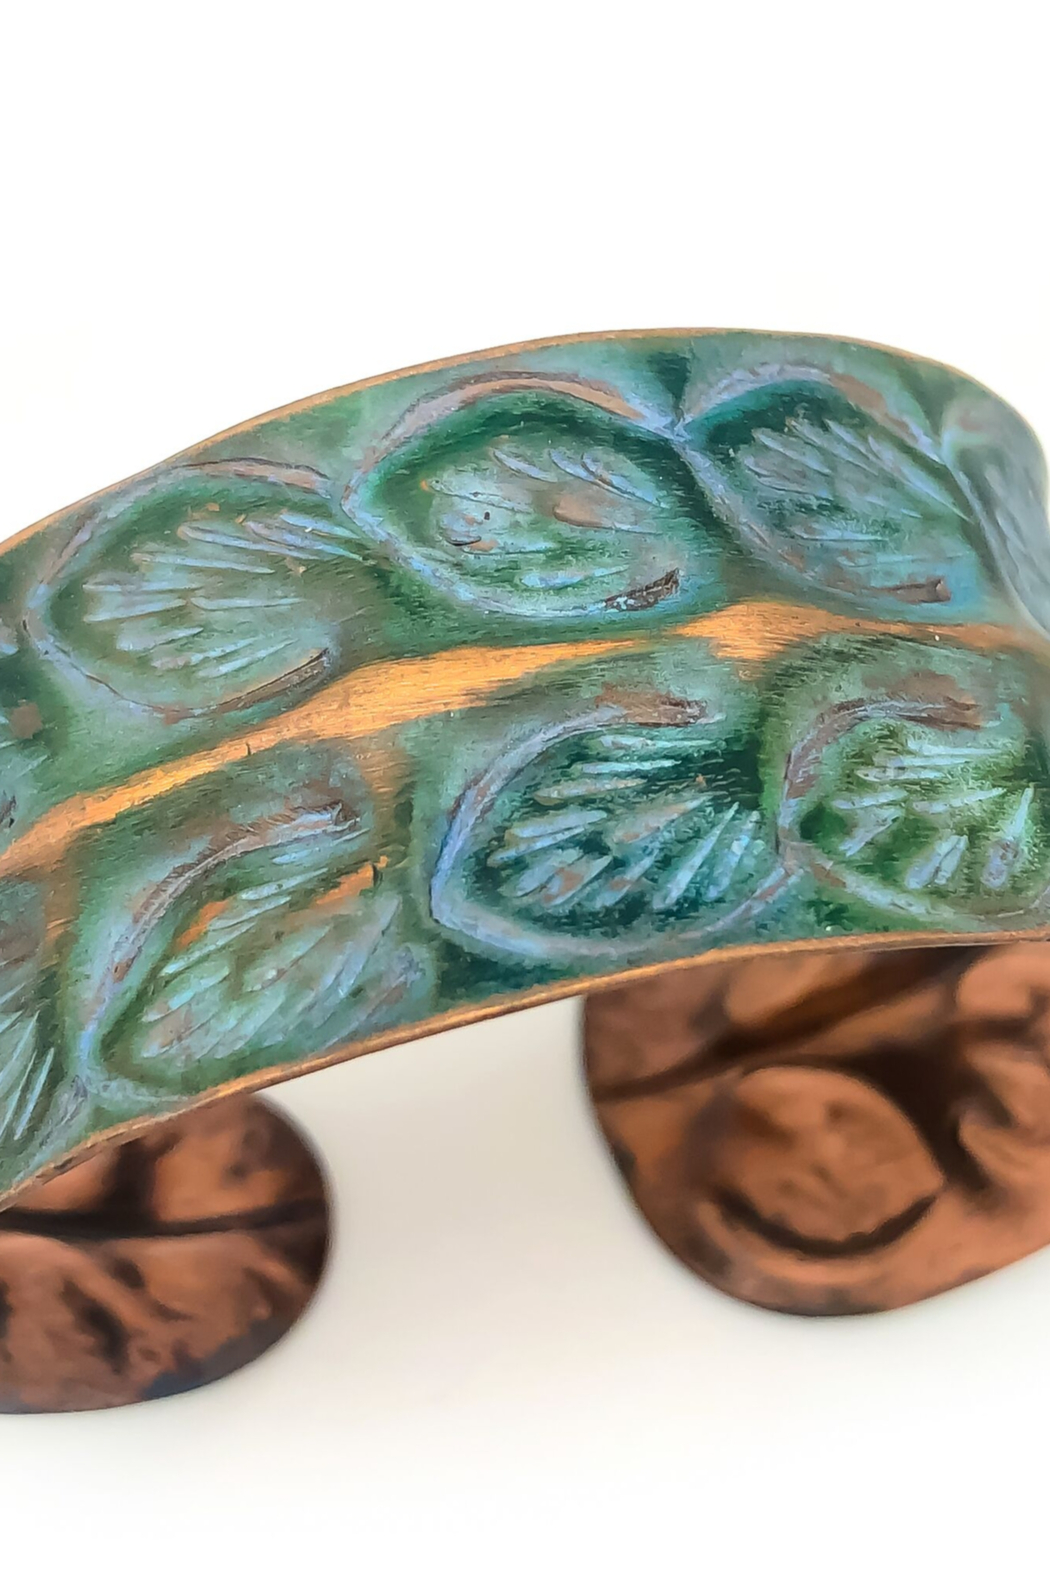 Anju Handcrafted Artisan Jewelry BP285 Copper Patina Rows of Leaves Bracelet - Main Image